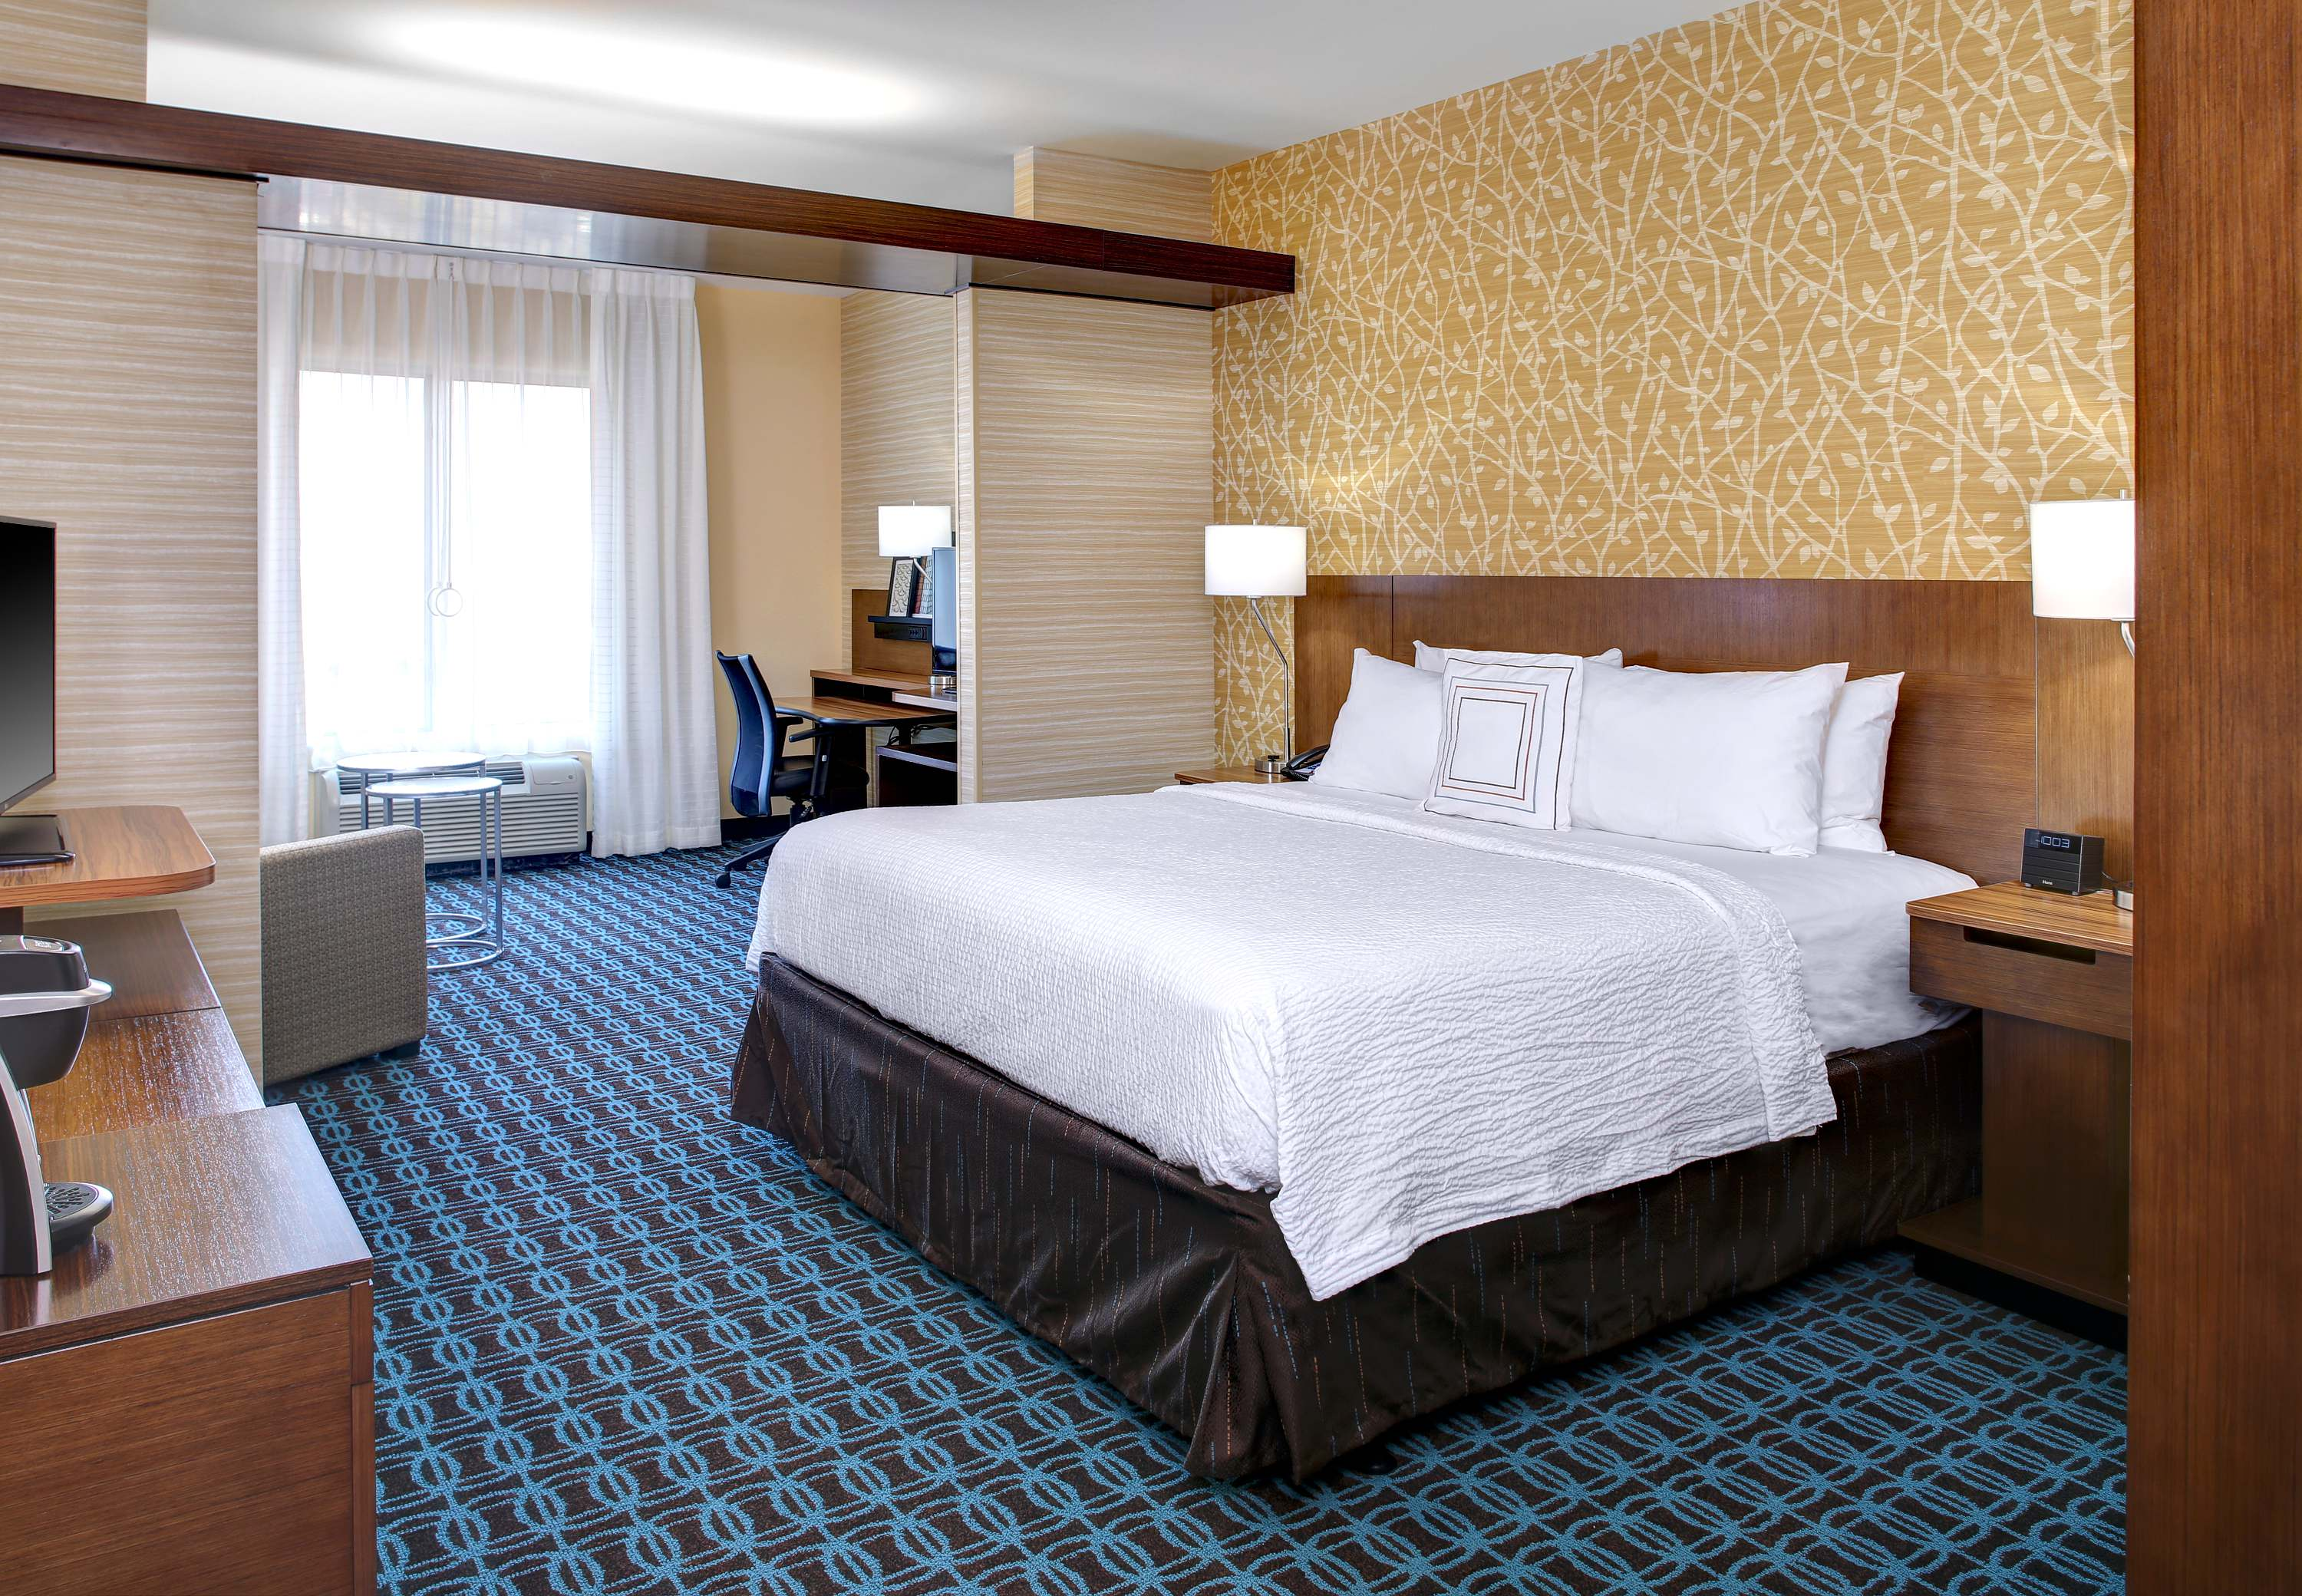 Fairfield Inn & Suites by Marriott Atlanta Stockbridge image 7